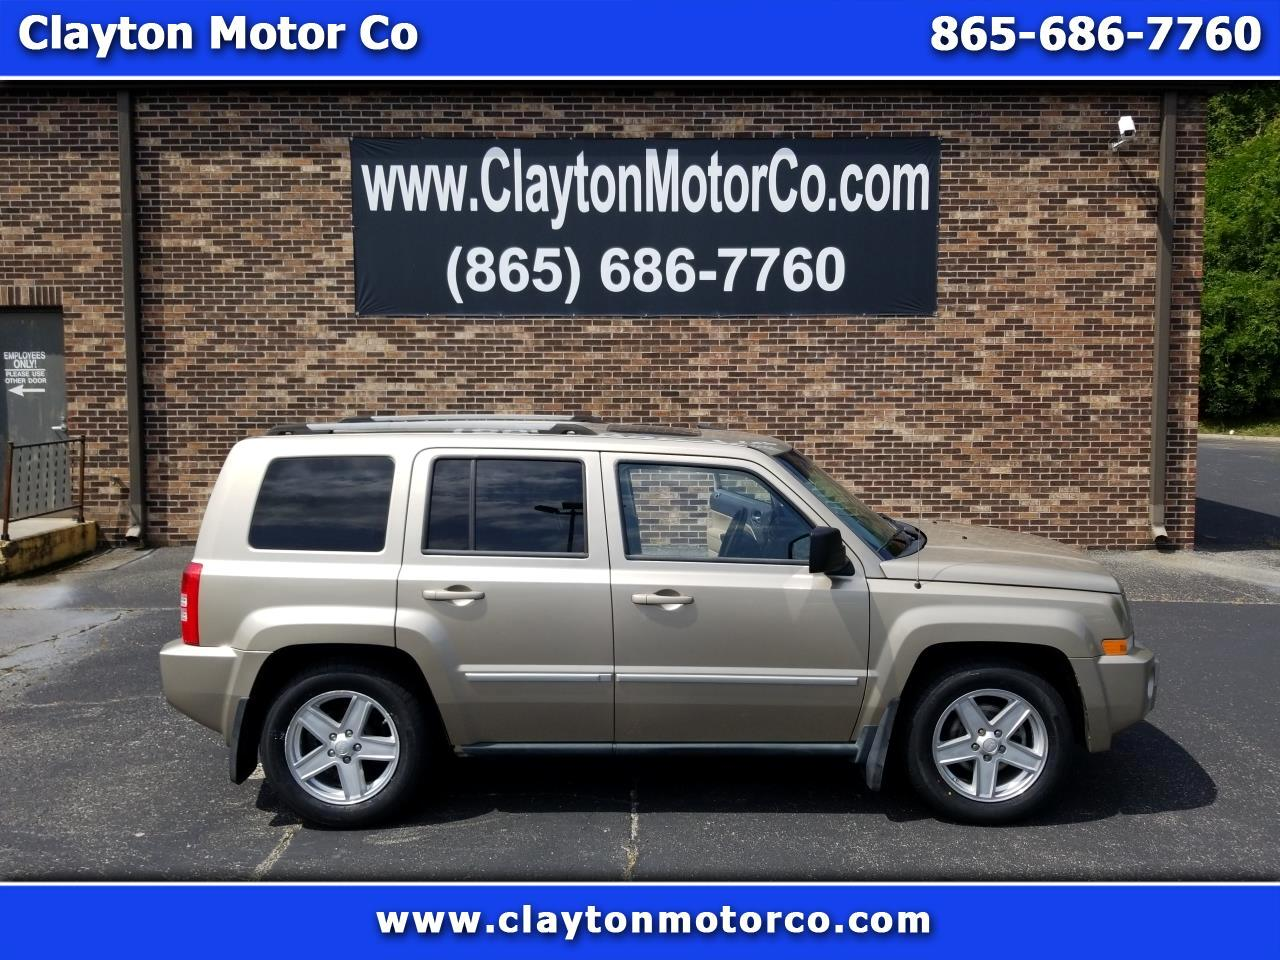 2010 Jeep Patriot 2WD 4dr Limited